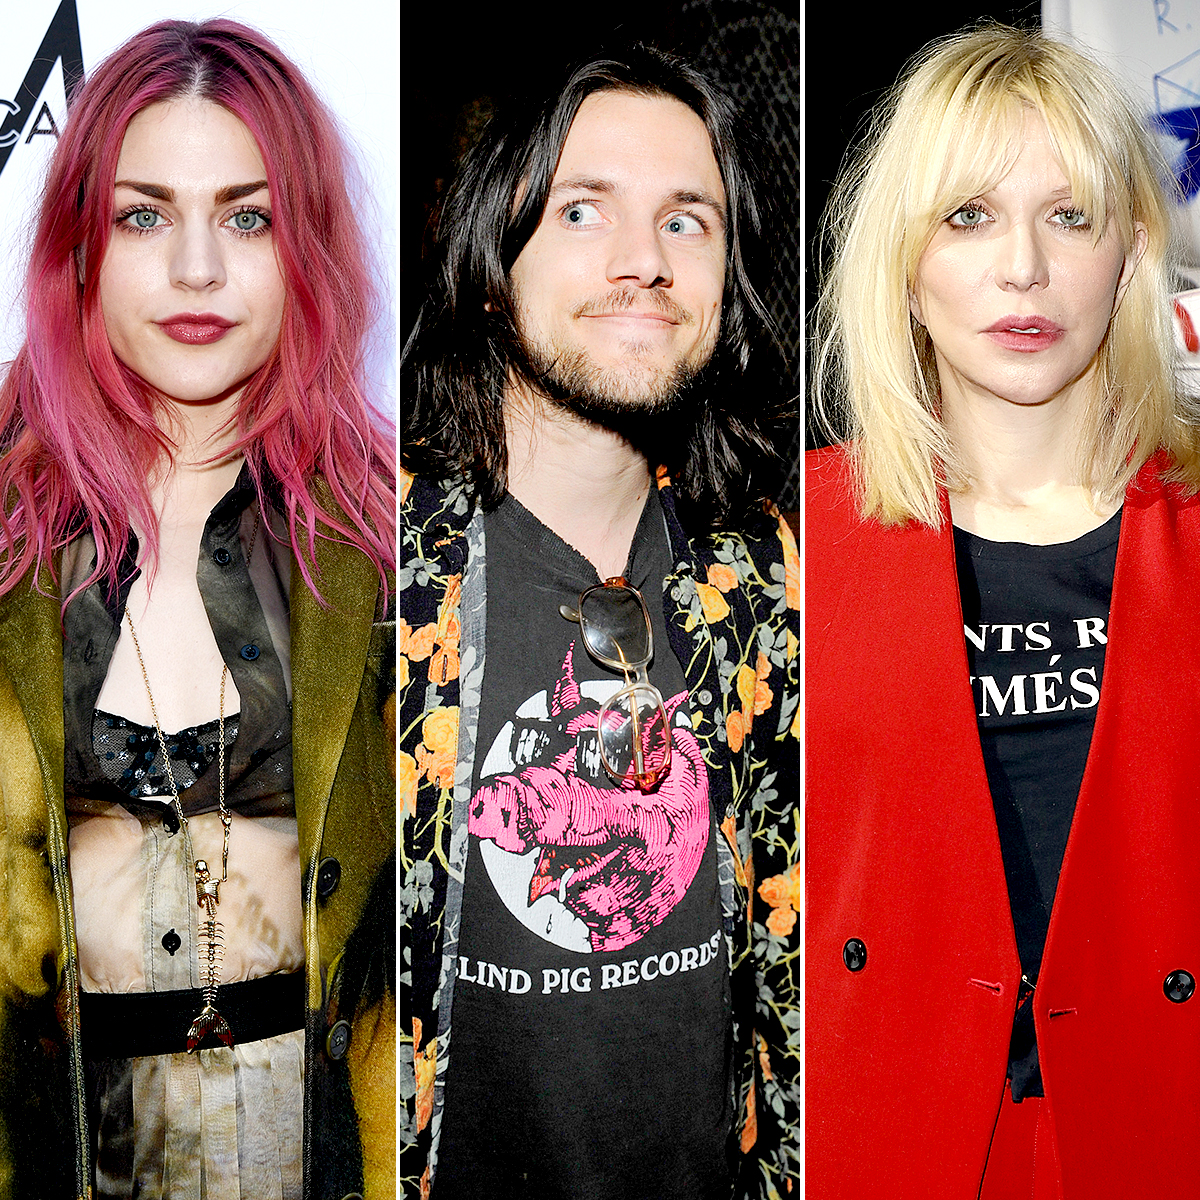 Frances Bean Cobain's ex sues Courtney Love over attempted murder claim